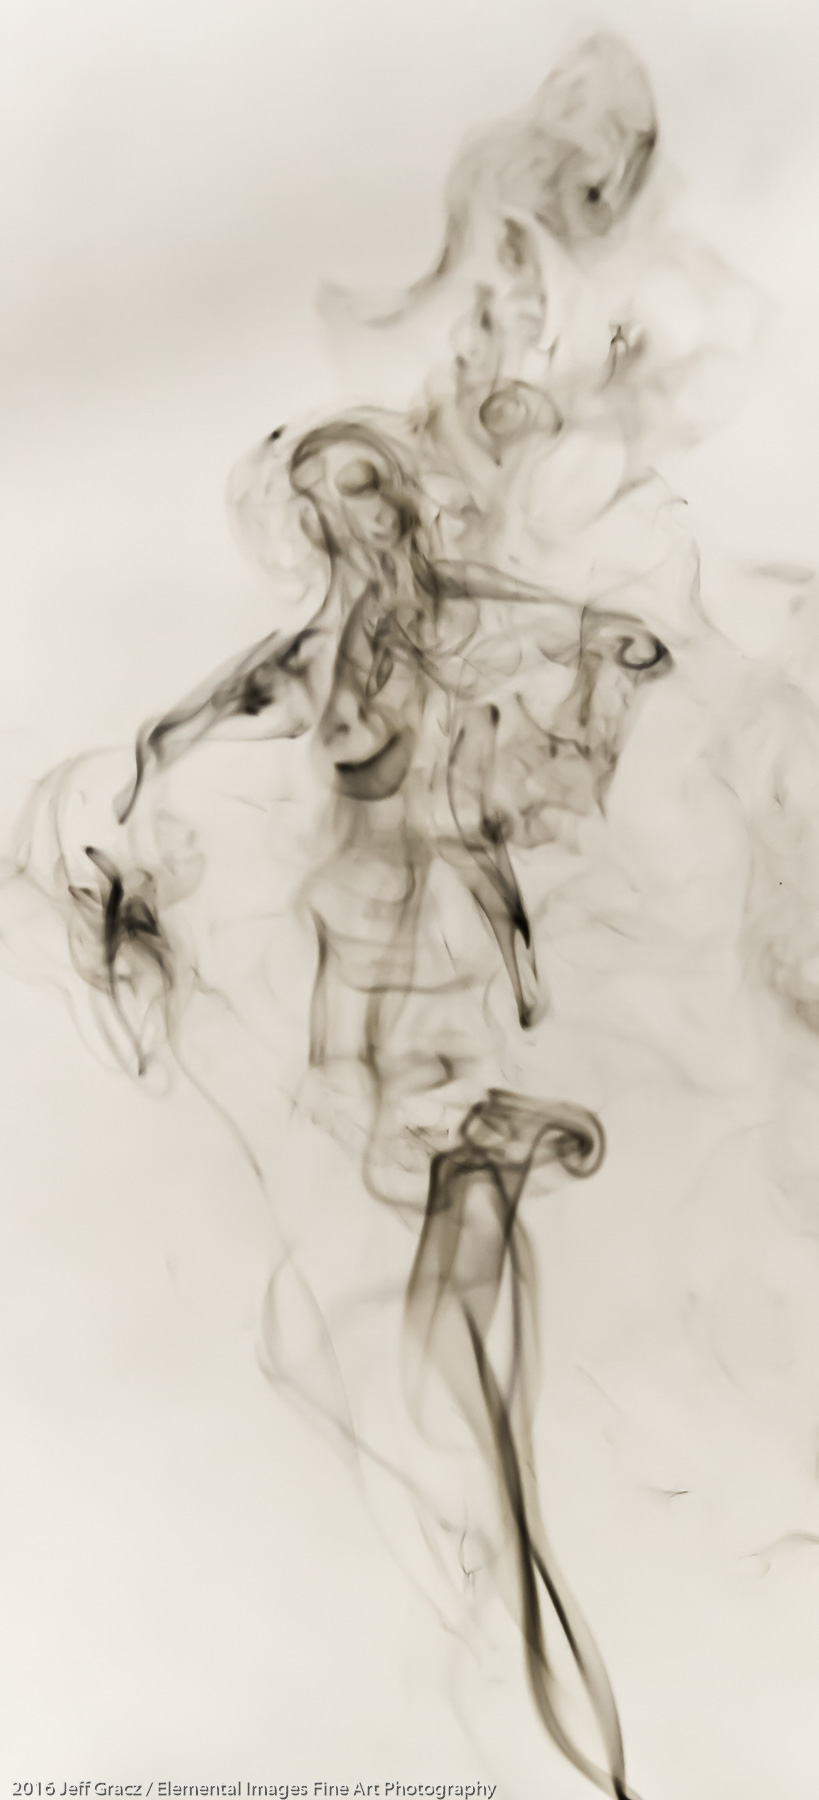 Smoke 22 | Vancouver | WA | USA - © 2016 Jeff Gracz / Elemental Images Fine Art Photography - All Rights Reserved Worldwide